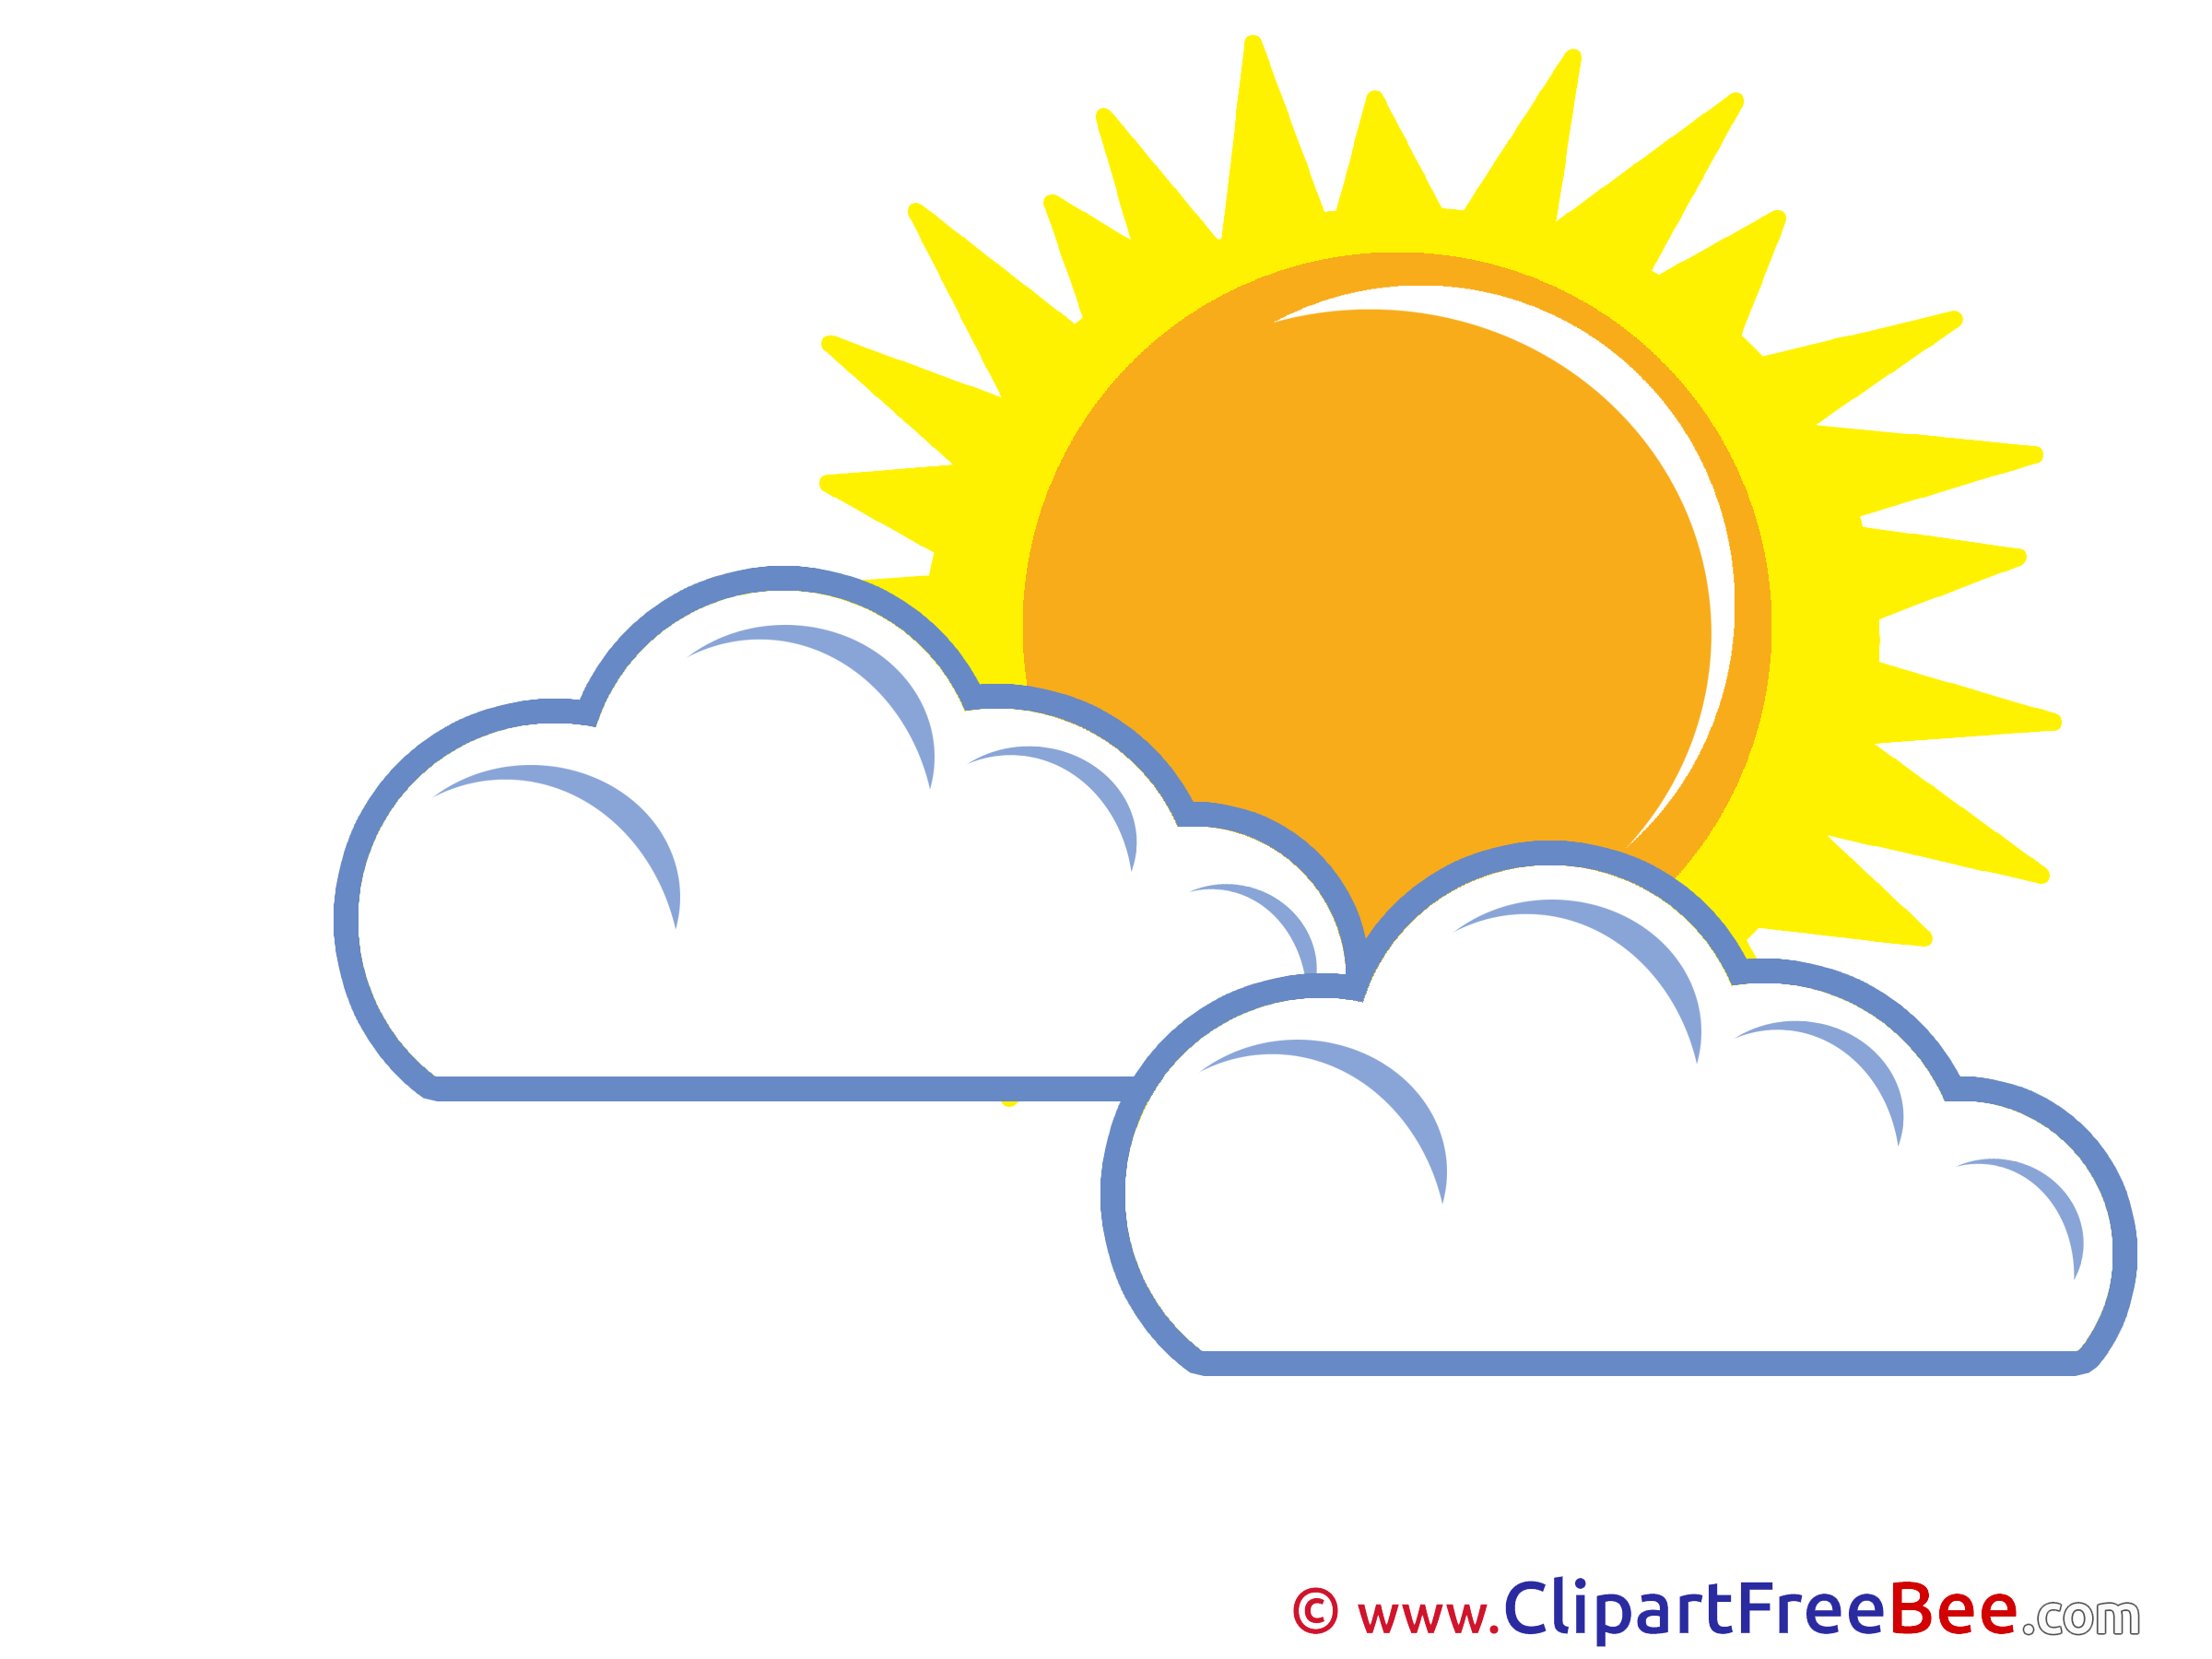 2400x1800 Warm Weather Sun Clouds Clipart Free Illustrations